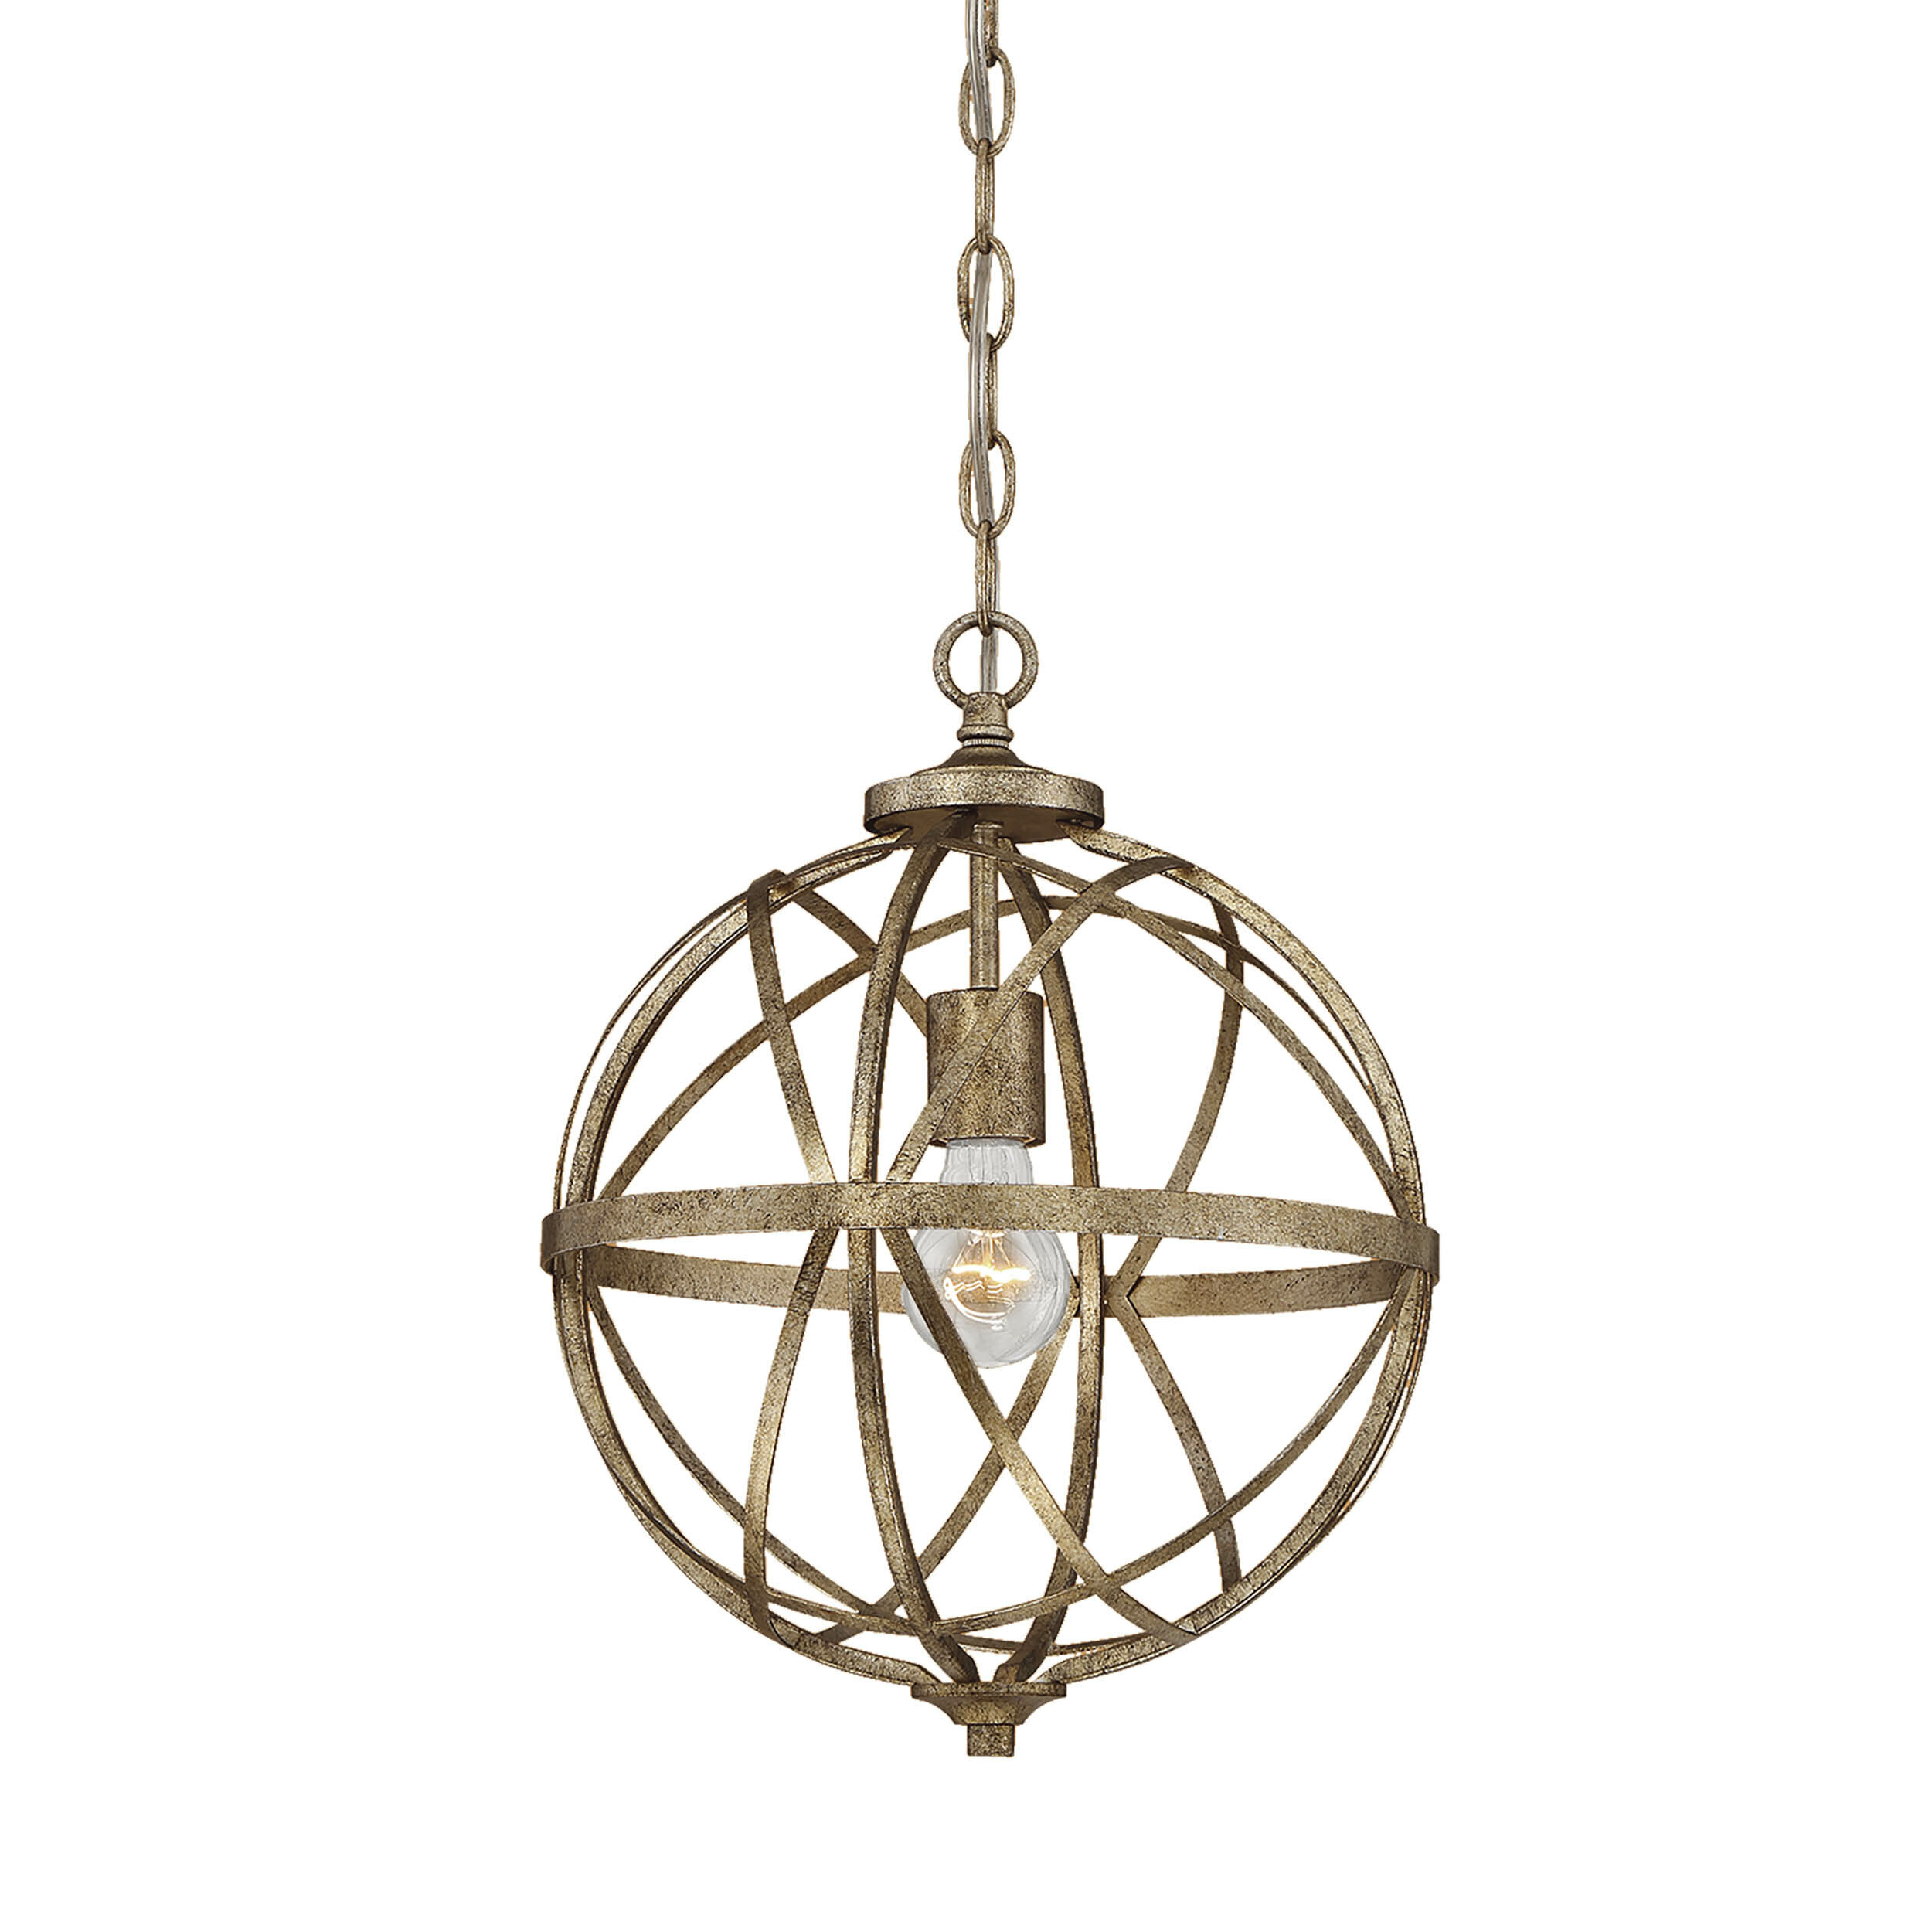 Rodden 1 Light Single Globe Pendant Pertaining To Adcock 3 Light Single Globe Pendants (Gallery 10 of 30)